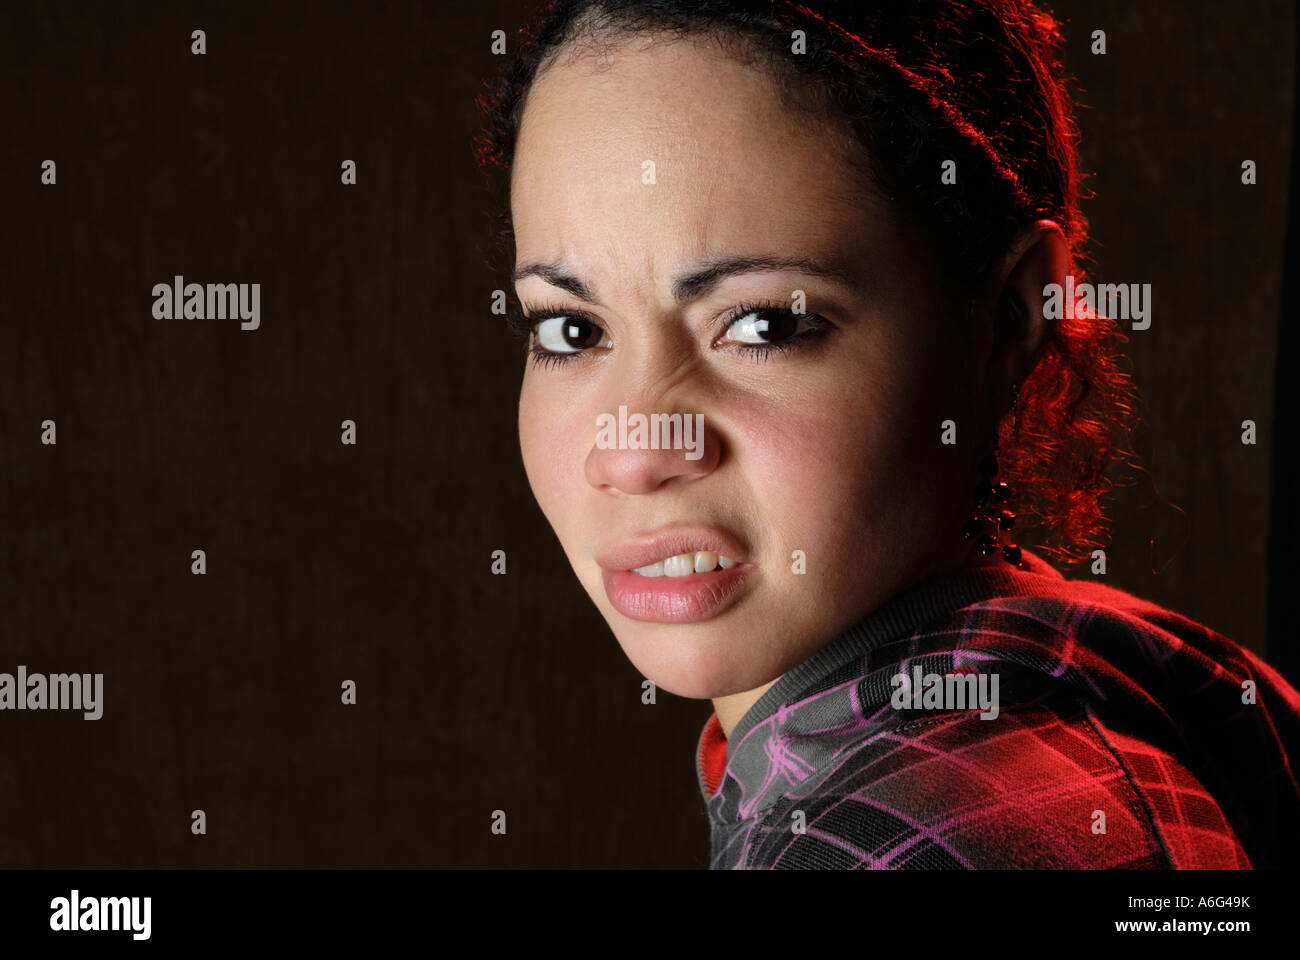 Portrait, Woman snarling - Stock Image